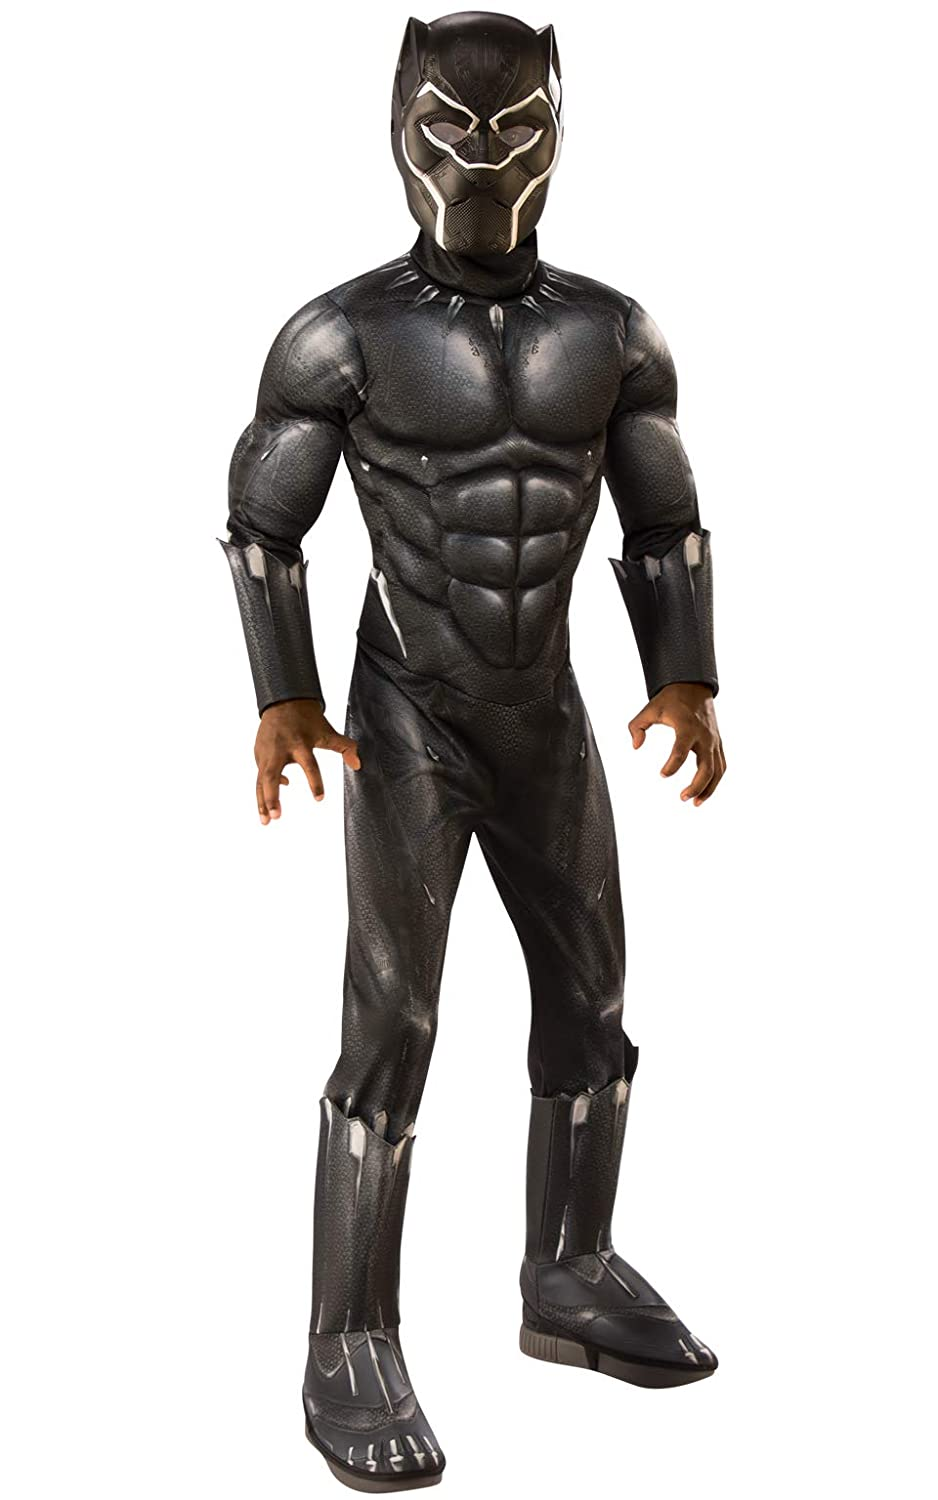 Rubie's Deluxe Black Panther Child's Costume, Grey